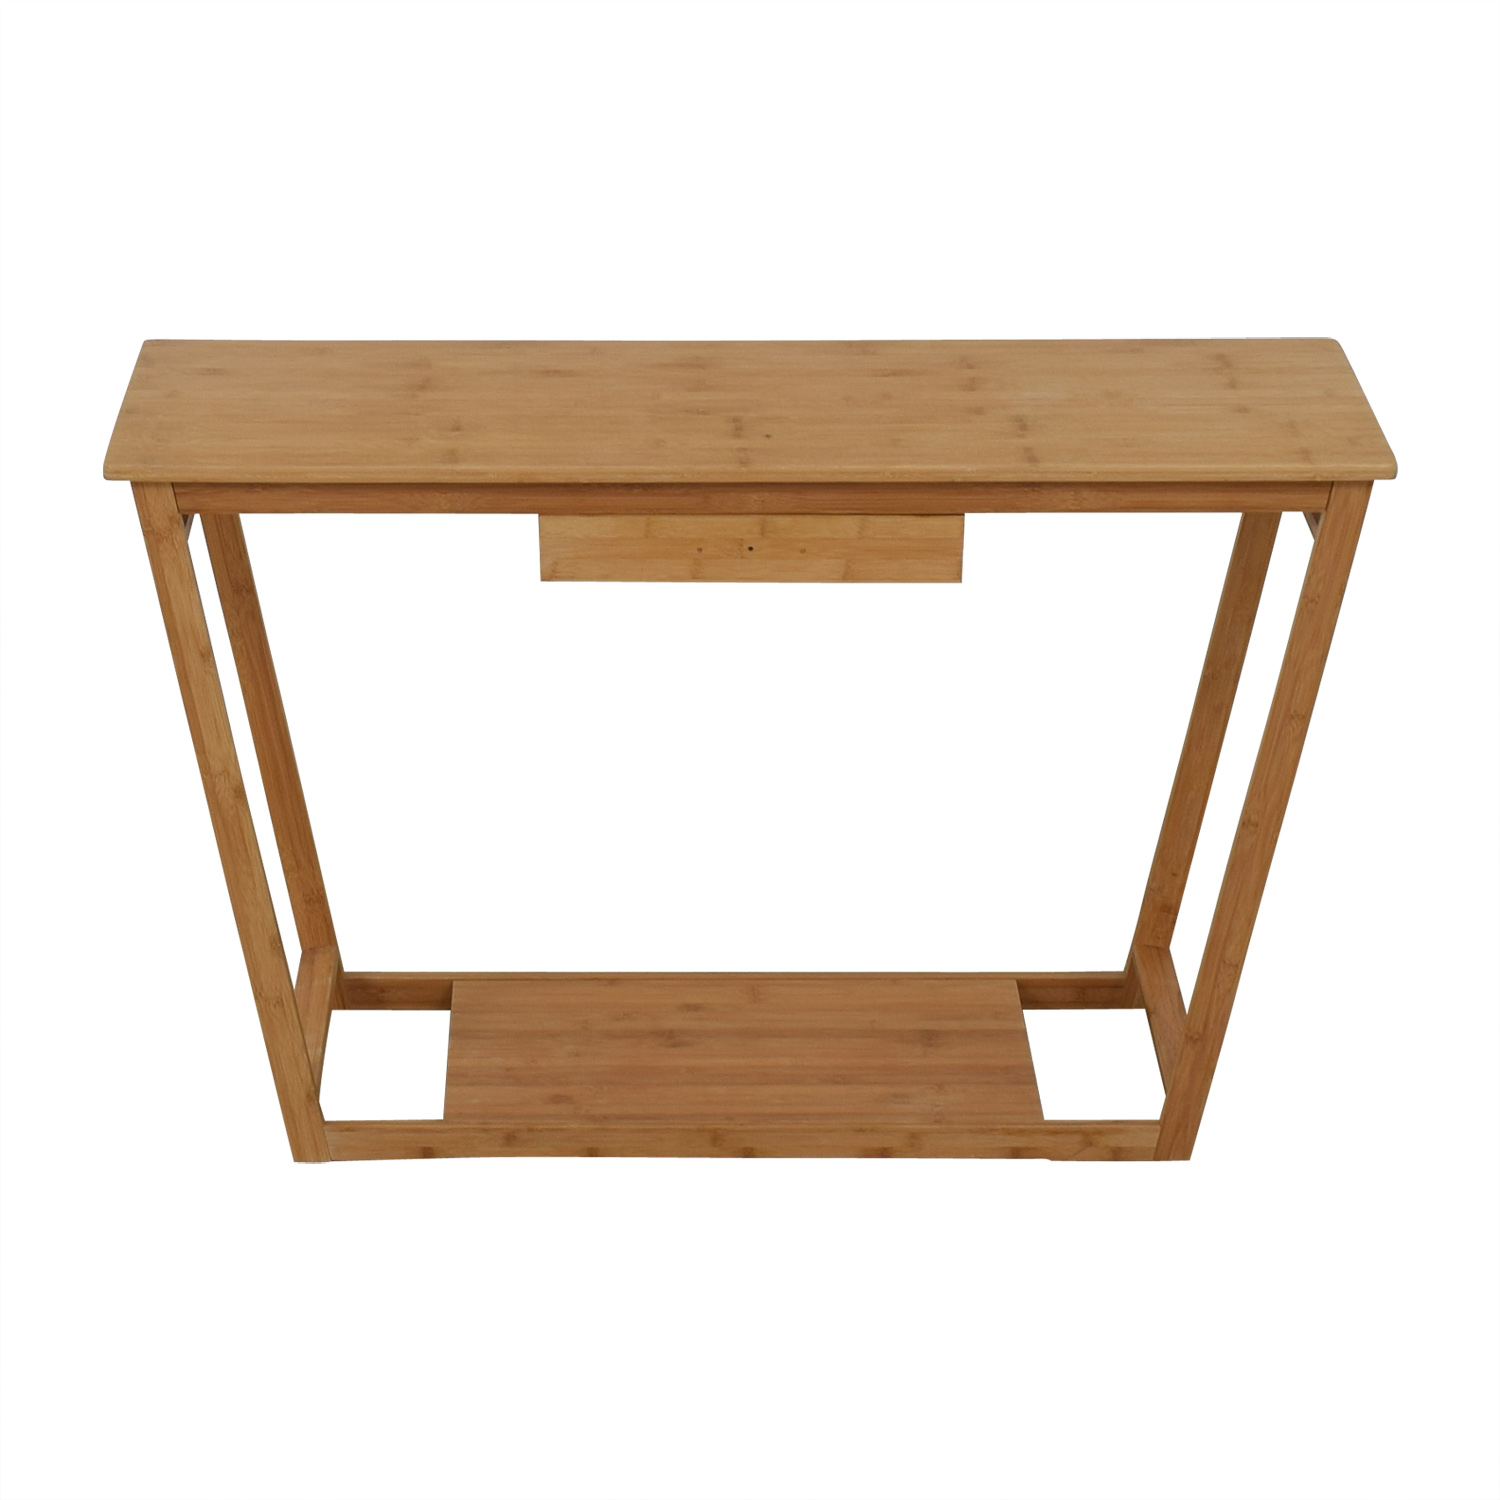 Bamboo Wood Single Drawer Desk or Table Accent Tables